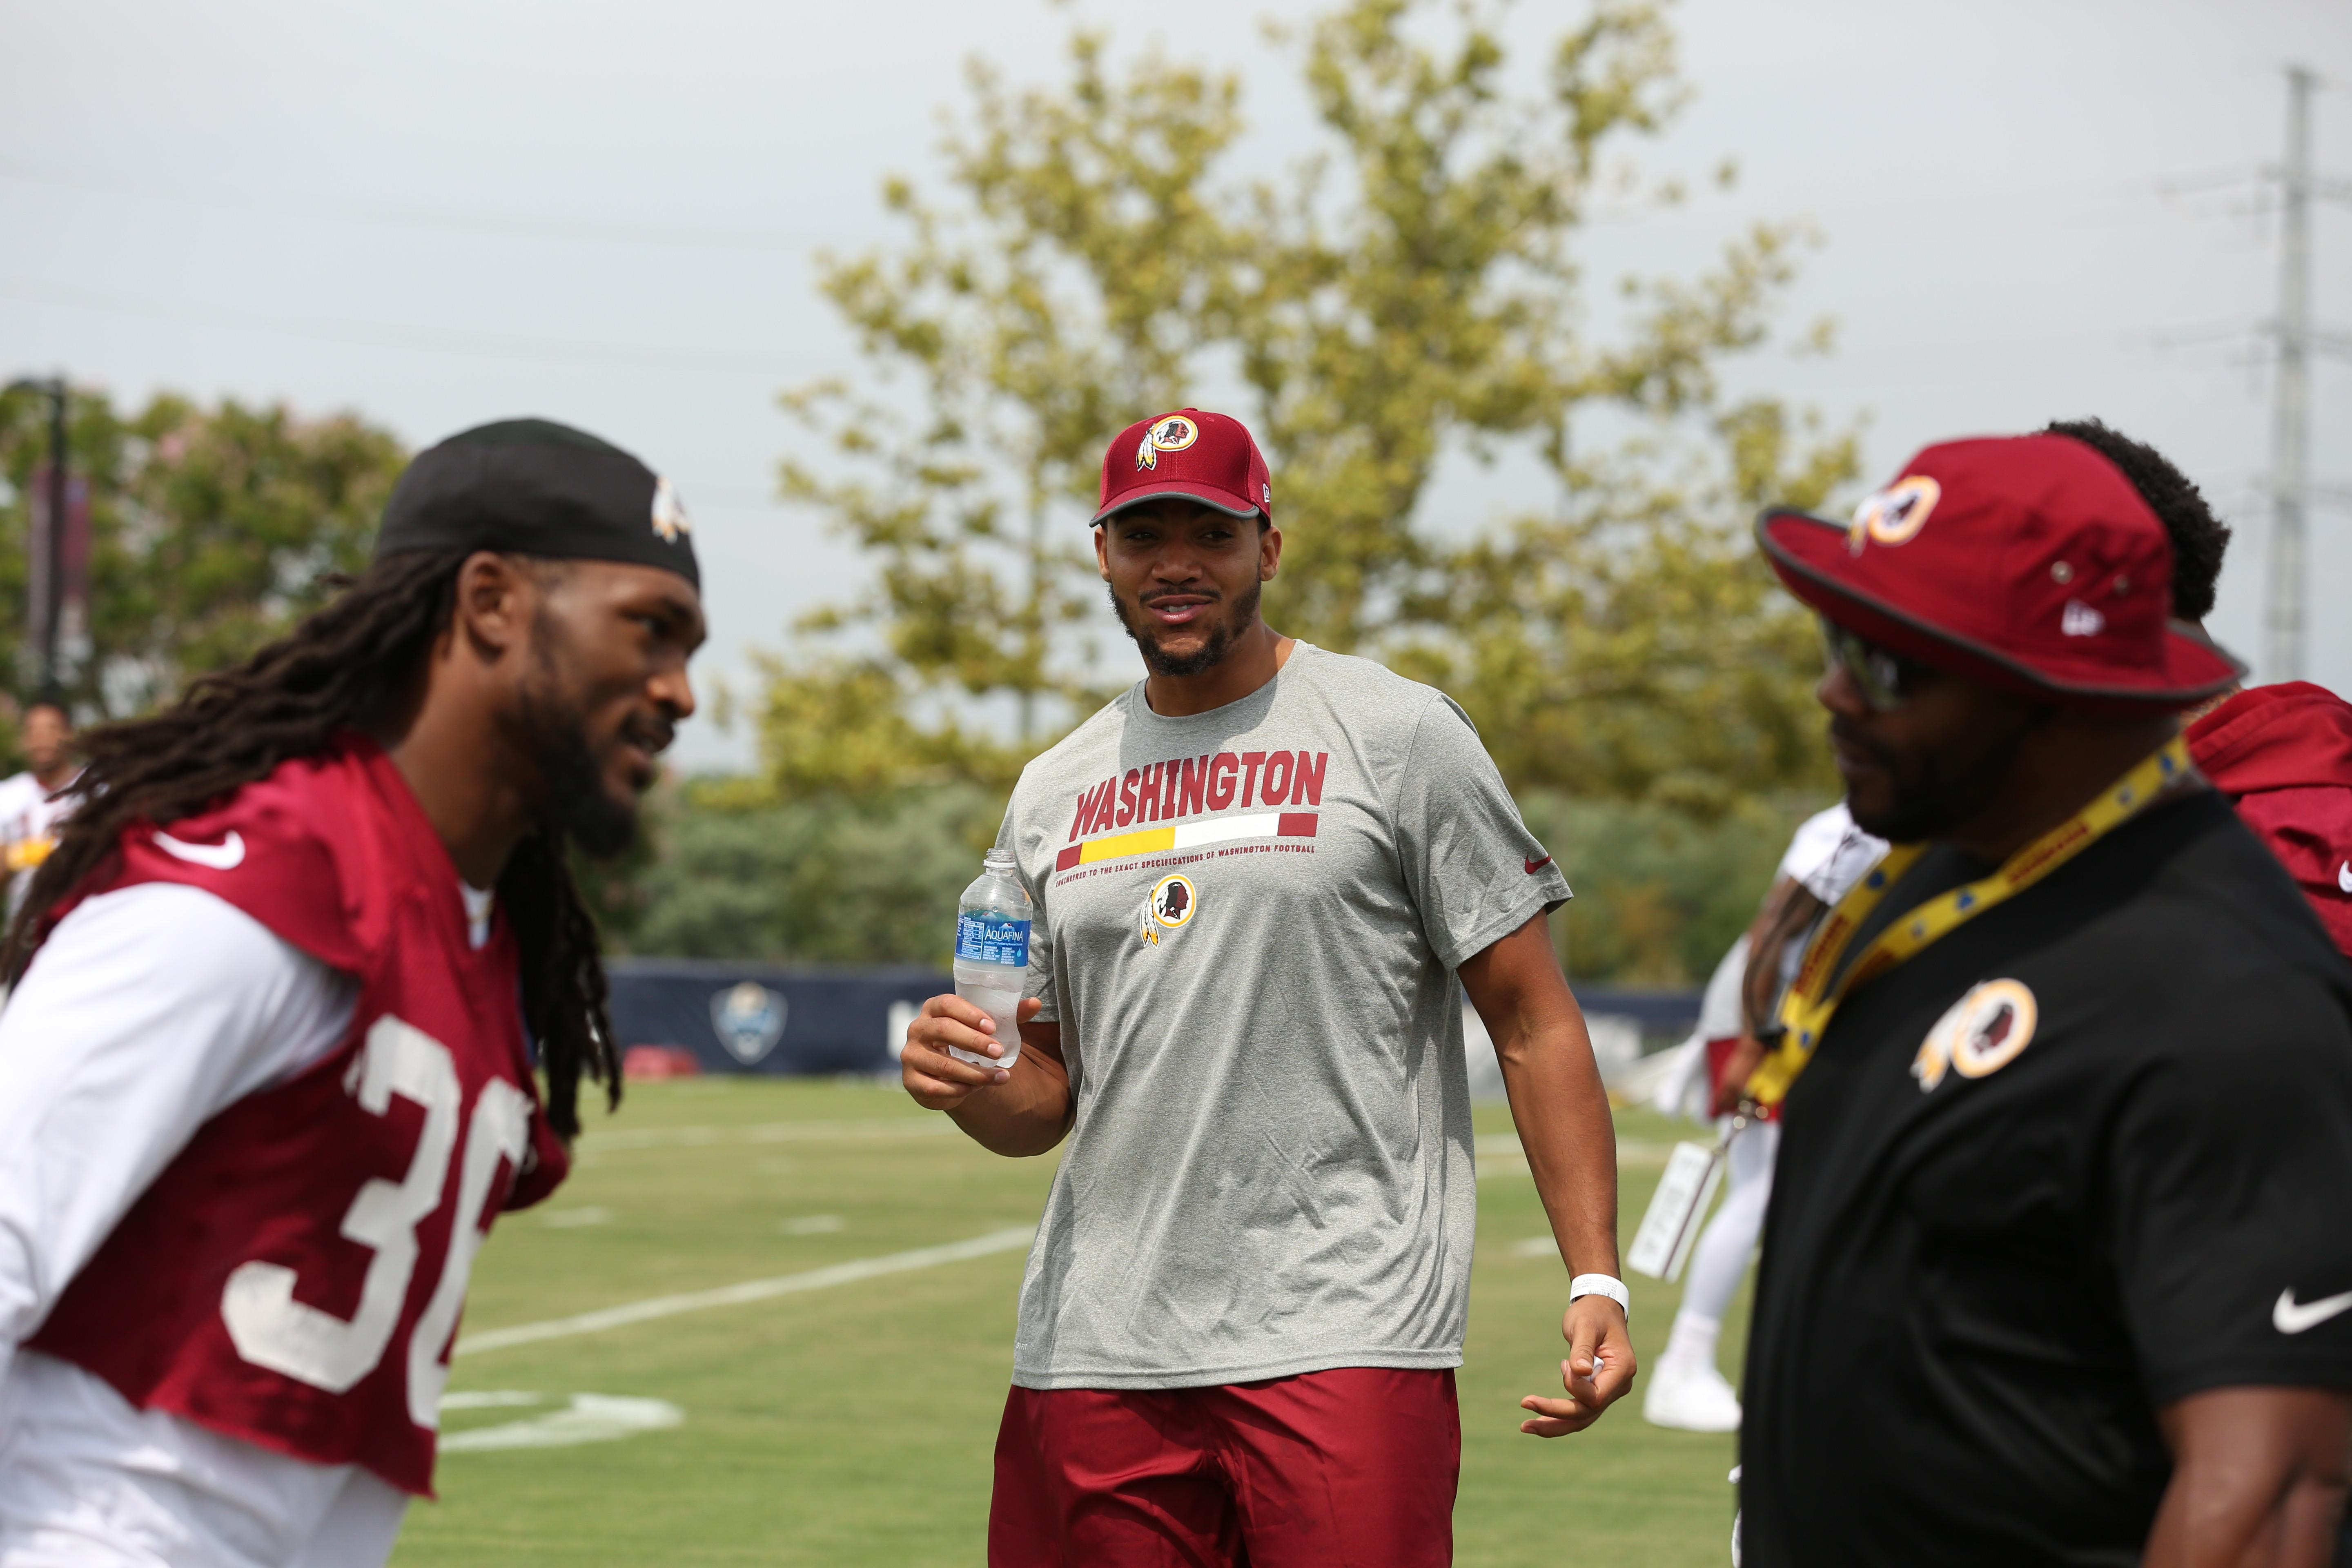 Football season is just around the corner and the Redskins are getting ready to kick off the right way. At the Bon Secours training facility in Richmond, VA, fans gathered to watch the team sweat it out in preparation for the coming season. (Amanda Andrade-Rhoades/DC Refined)